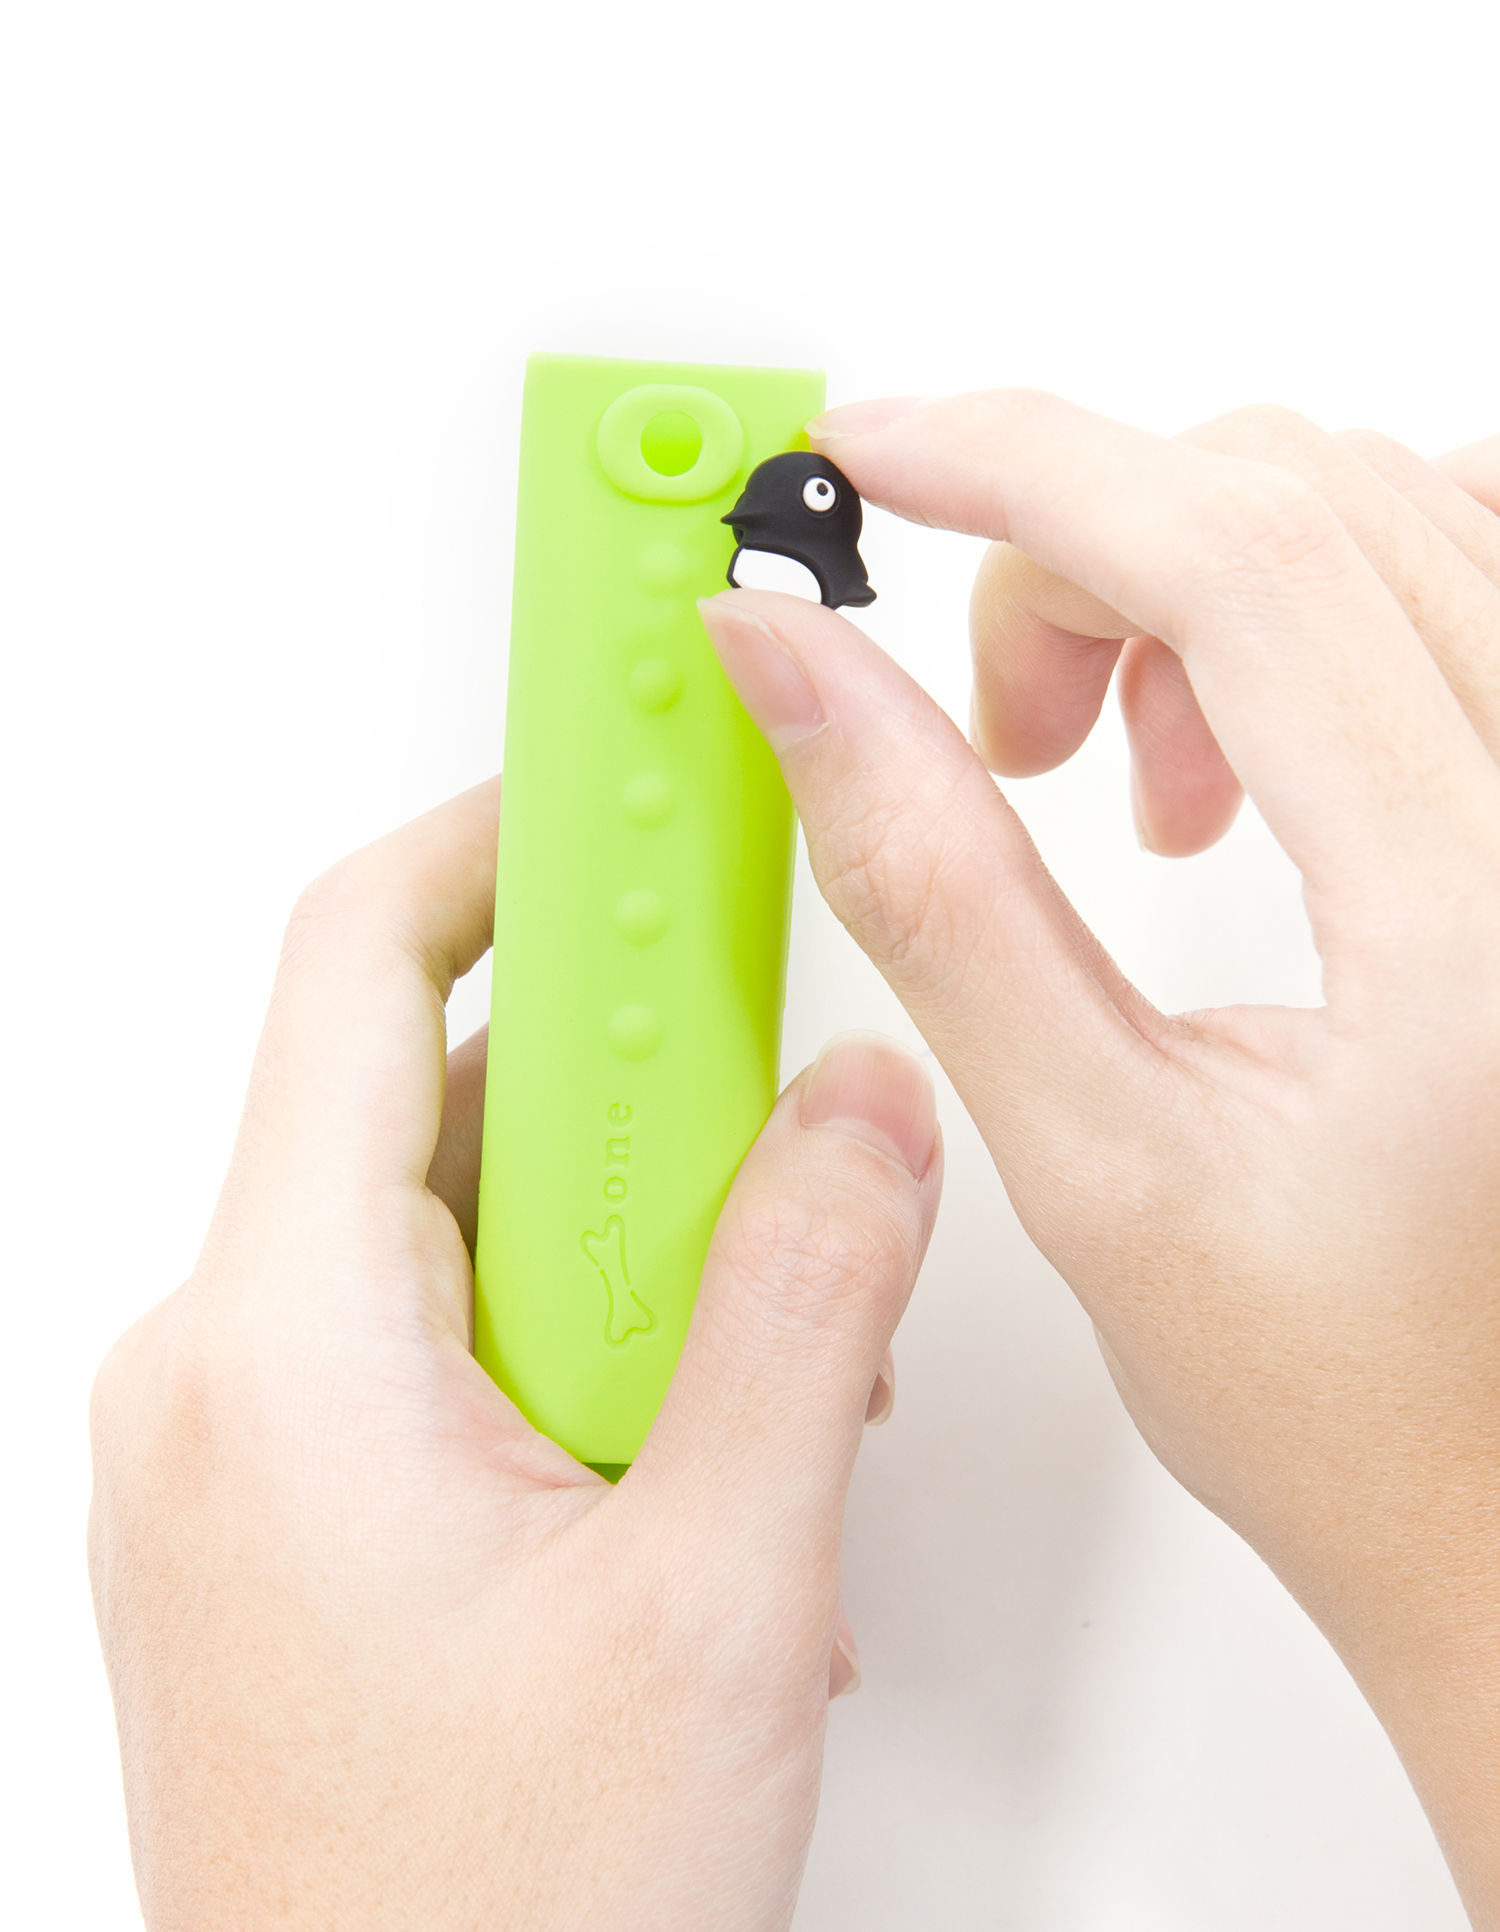 speaker for iphone penguin power mobile charger for smartphones etc green 13011